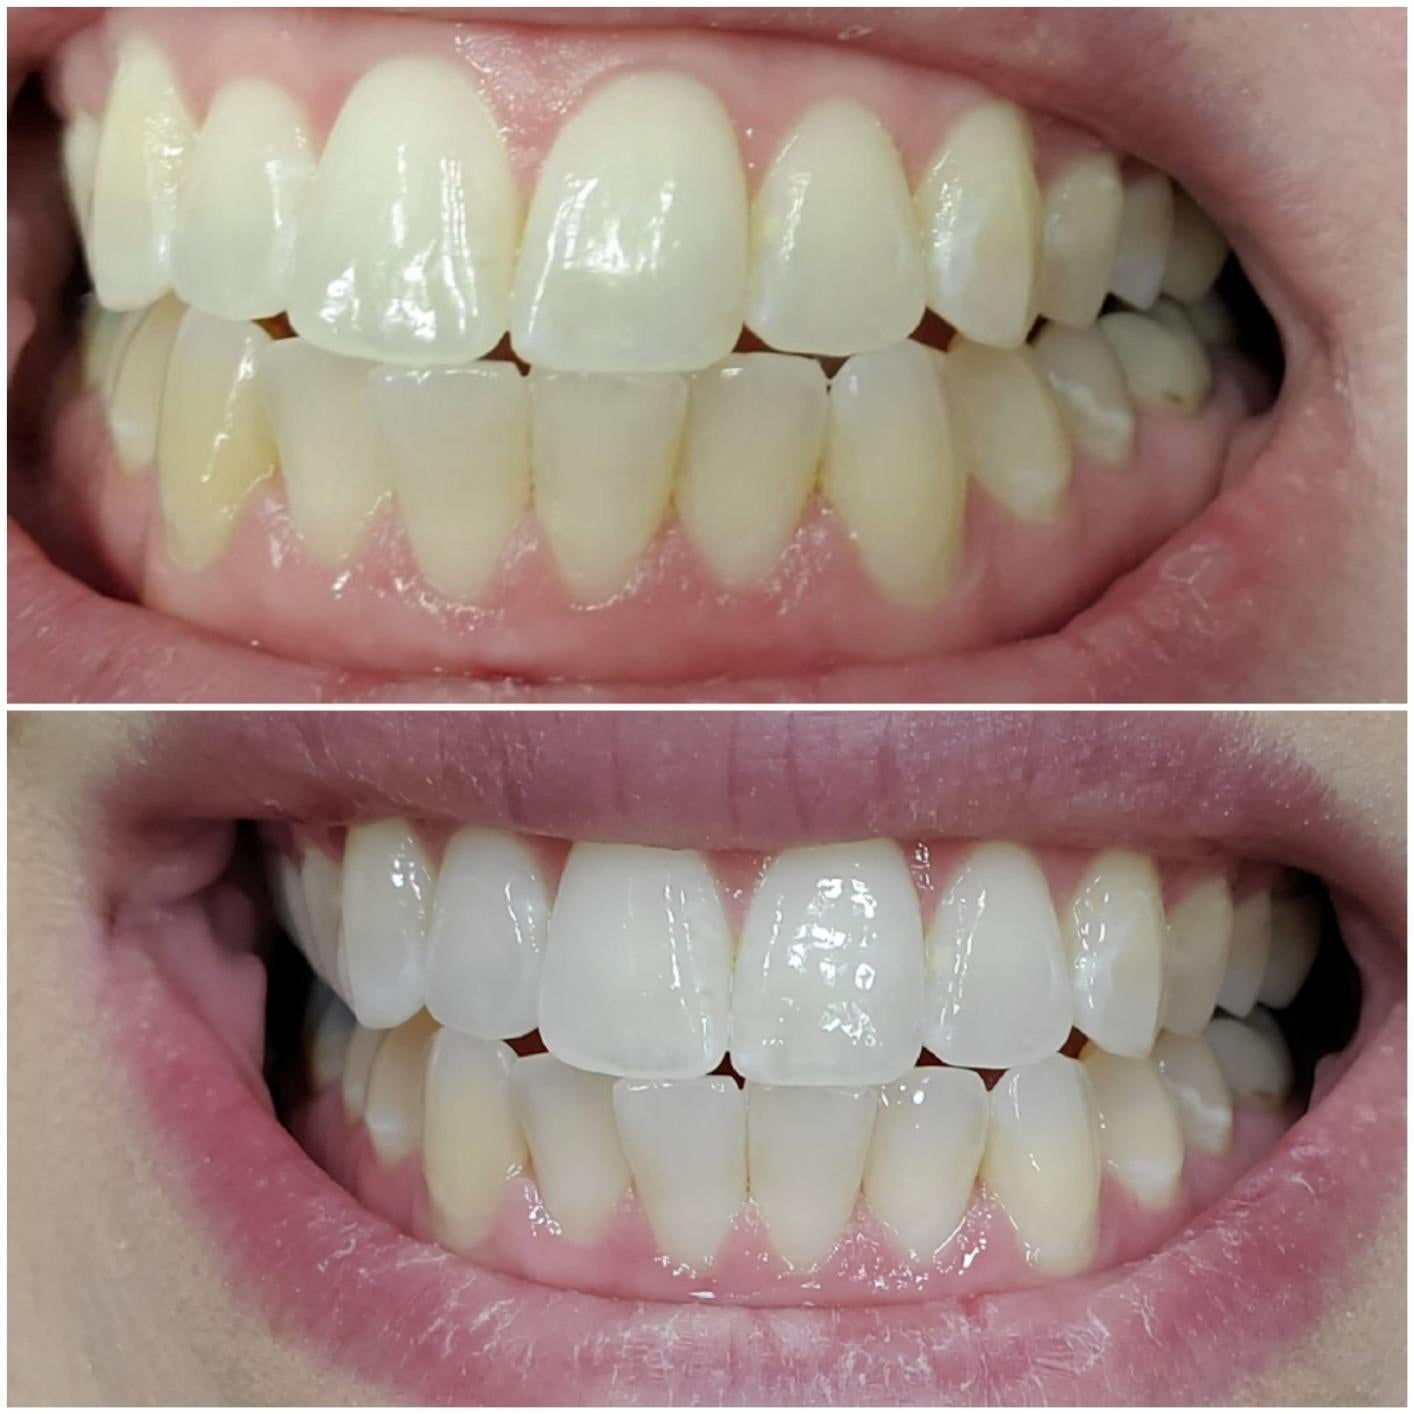 reviewer's teeth looking yellow then much whiter